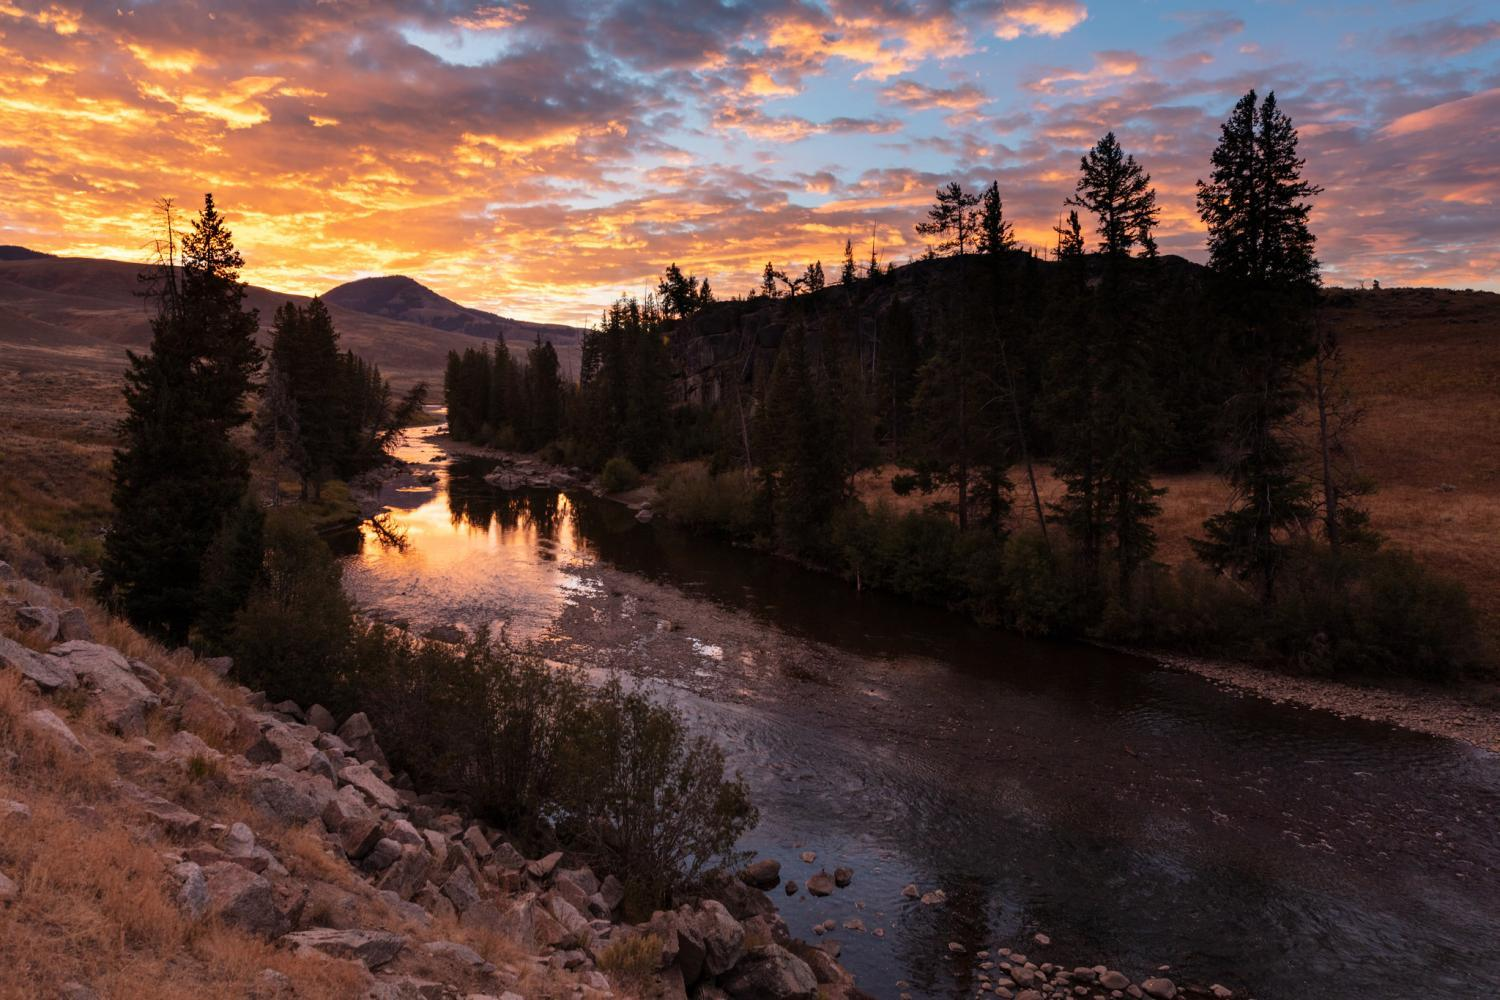 Sunrise over Lamar River at Yellowstone National Park